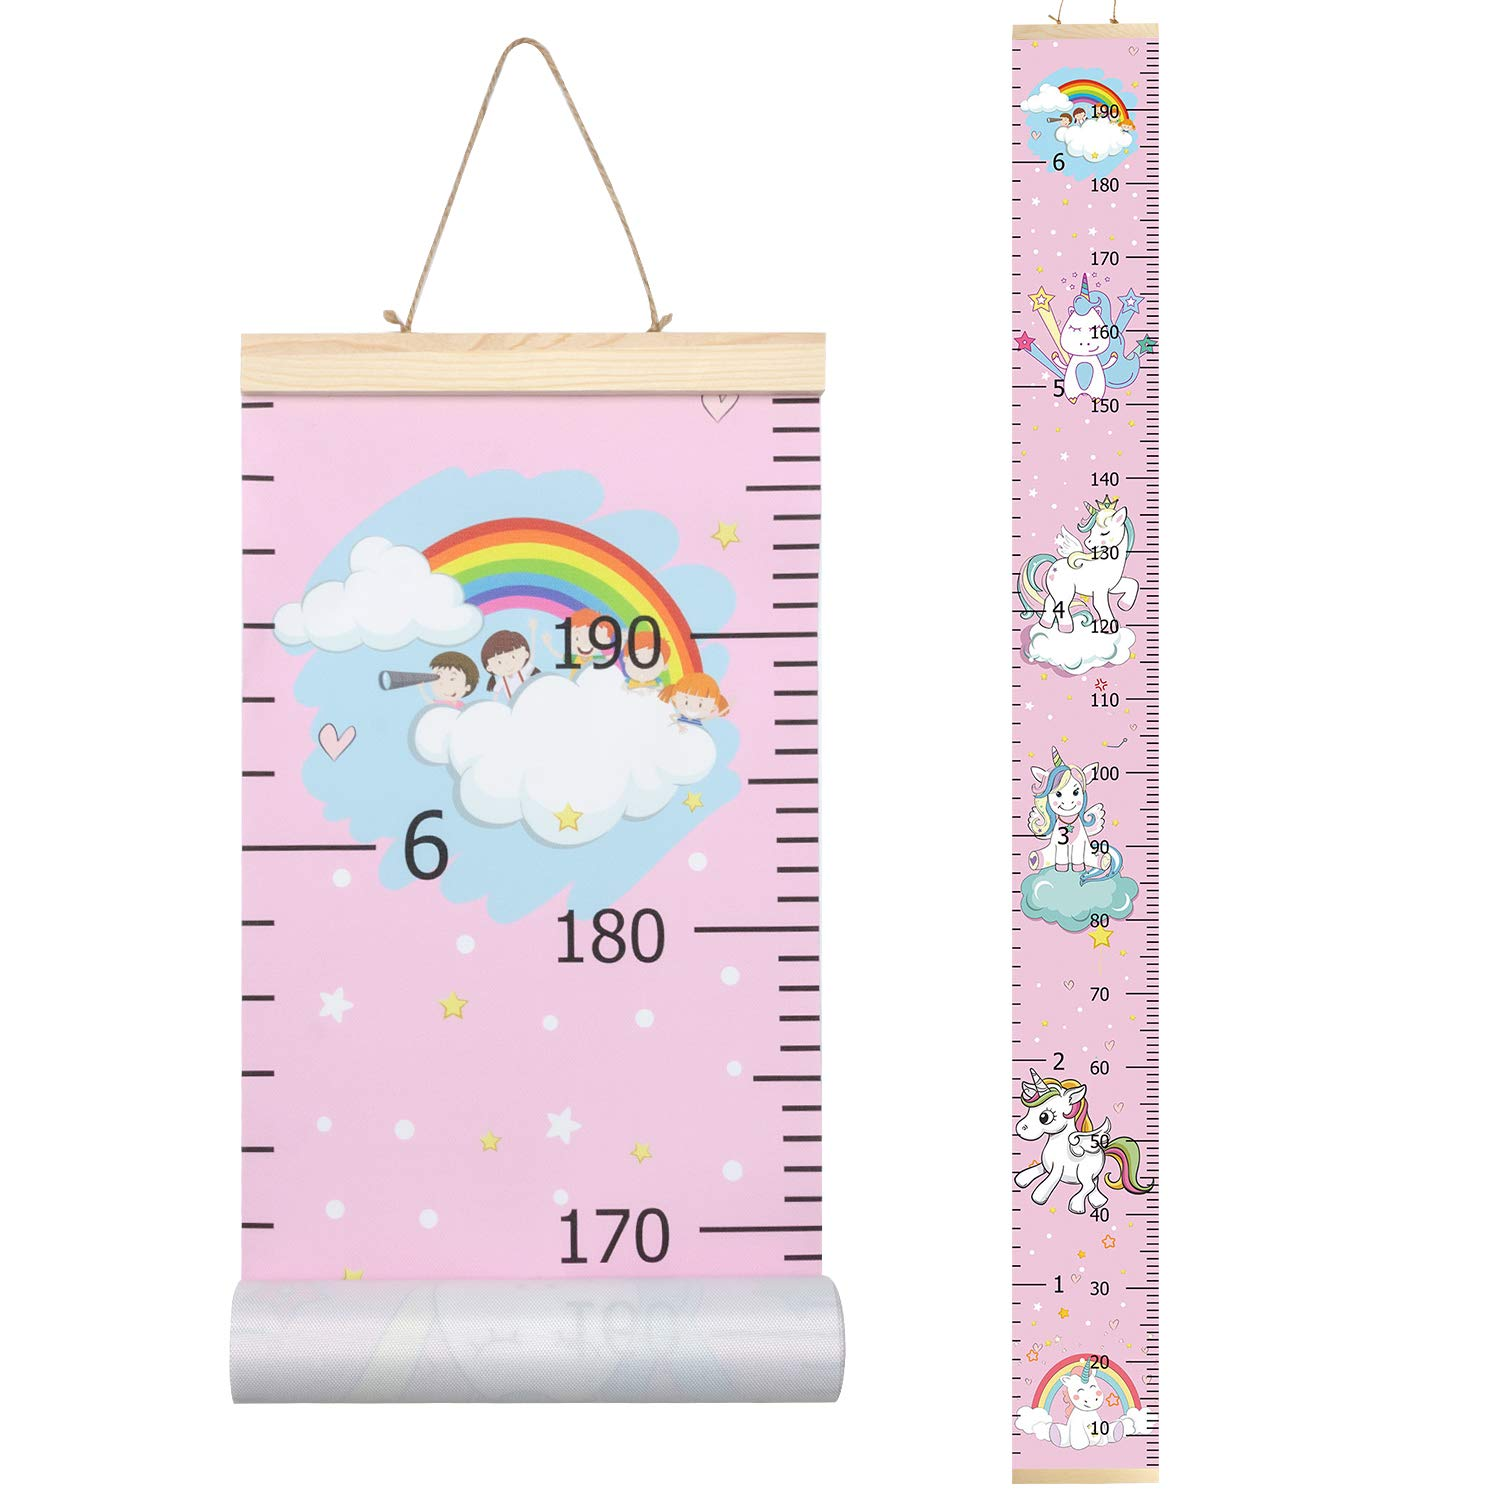 PASHOP Kids Airplane Car Growth Chart Baby Roll-up Wood Frame Canvas Fabric Removable Height Growth Chart Wall Art Hanging Ruler Wall Decor for Nursery Bedroom 79 x 7.9 Inch Airplane Car